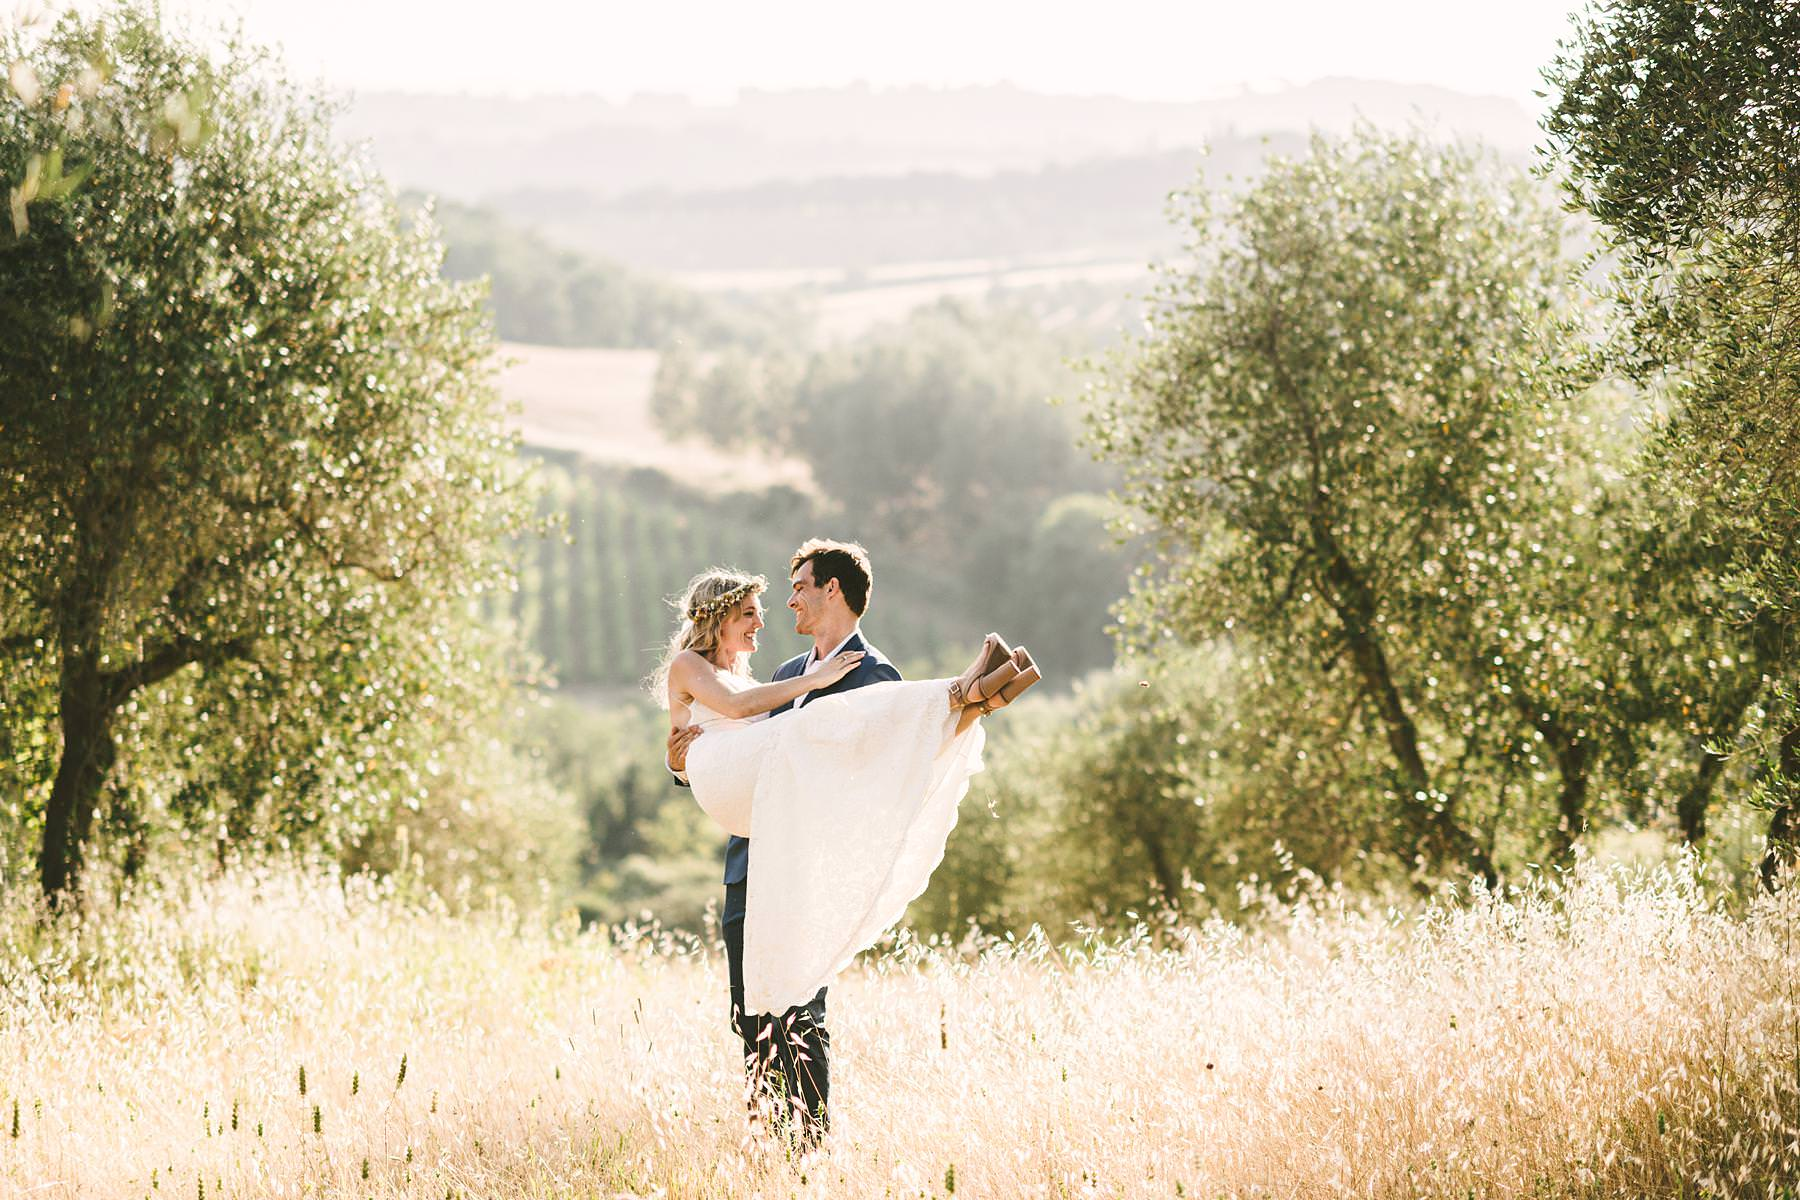 Romantic and lovely bride and groom wedding portrait in the warm, golden light of sunset at Villa La Torre country house located in the Montechiaro countryside area